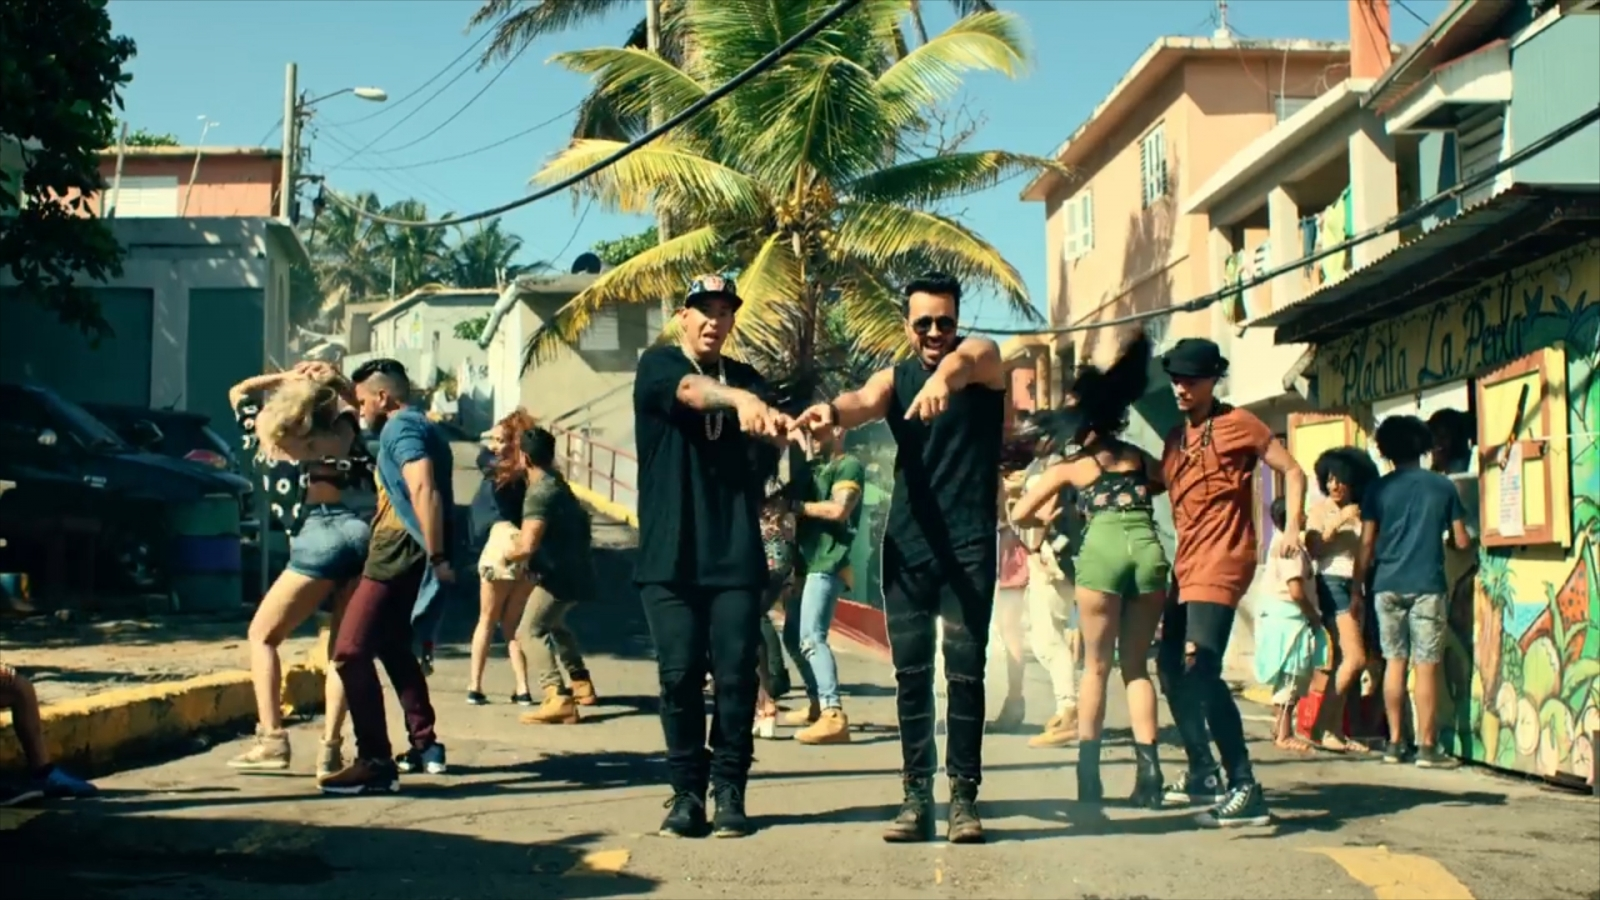 despacito-singers-condemn-venezuelan-president-nicolas-maduros-use-of-hit-song-as-propaganda